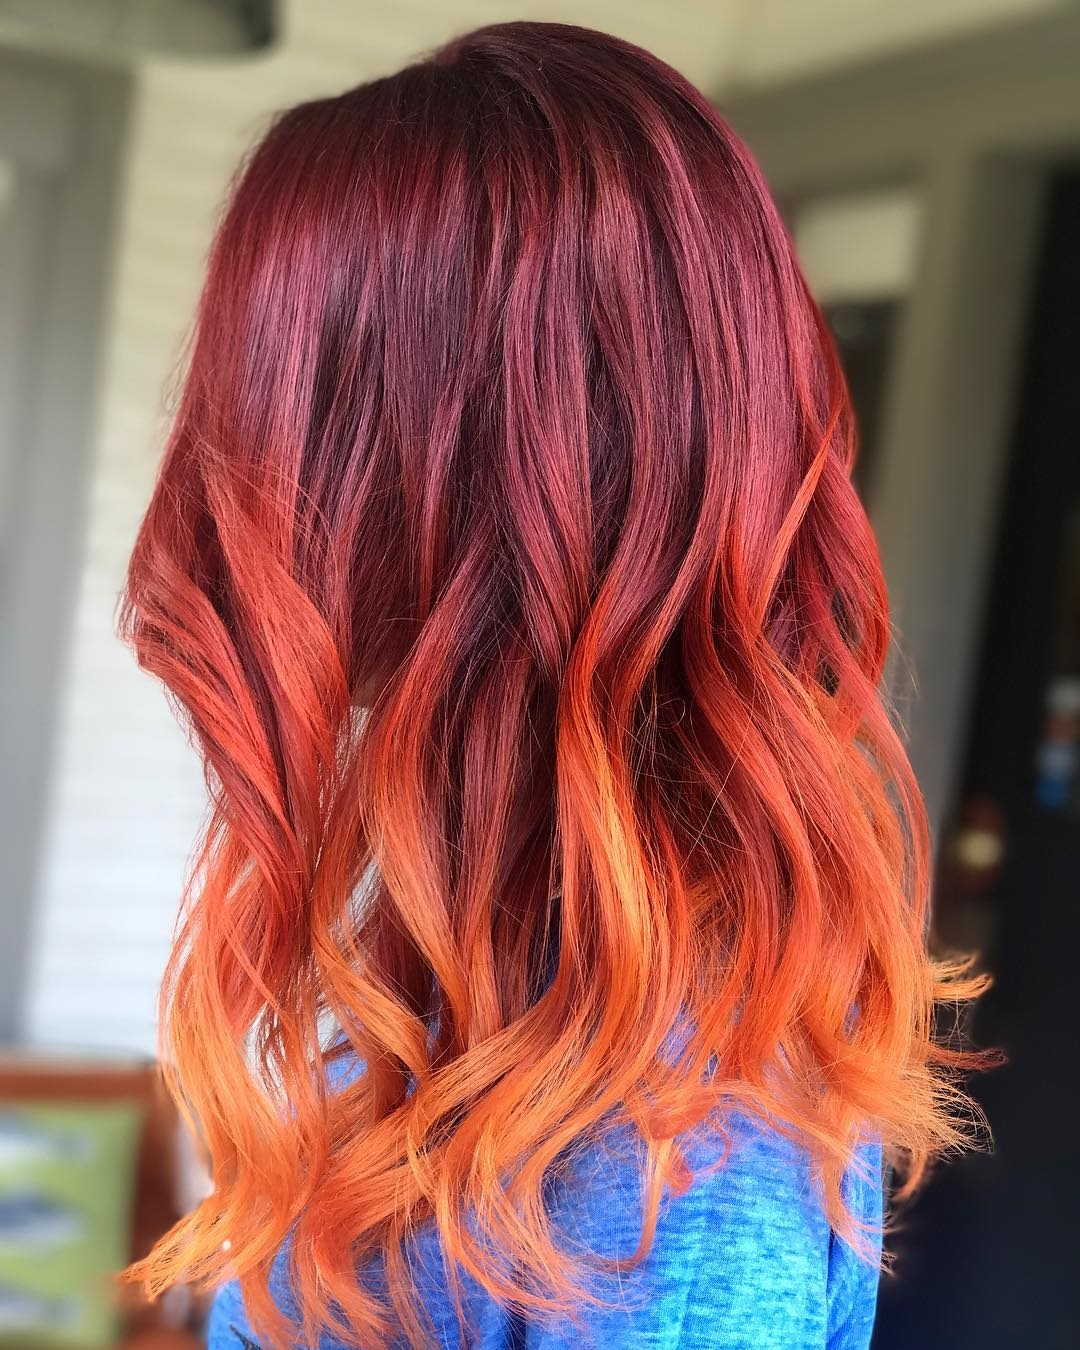 20-Radical-Styling-Ideas-For-Your-Red-Ombre-Hair.jpg